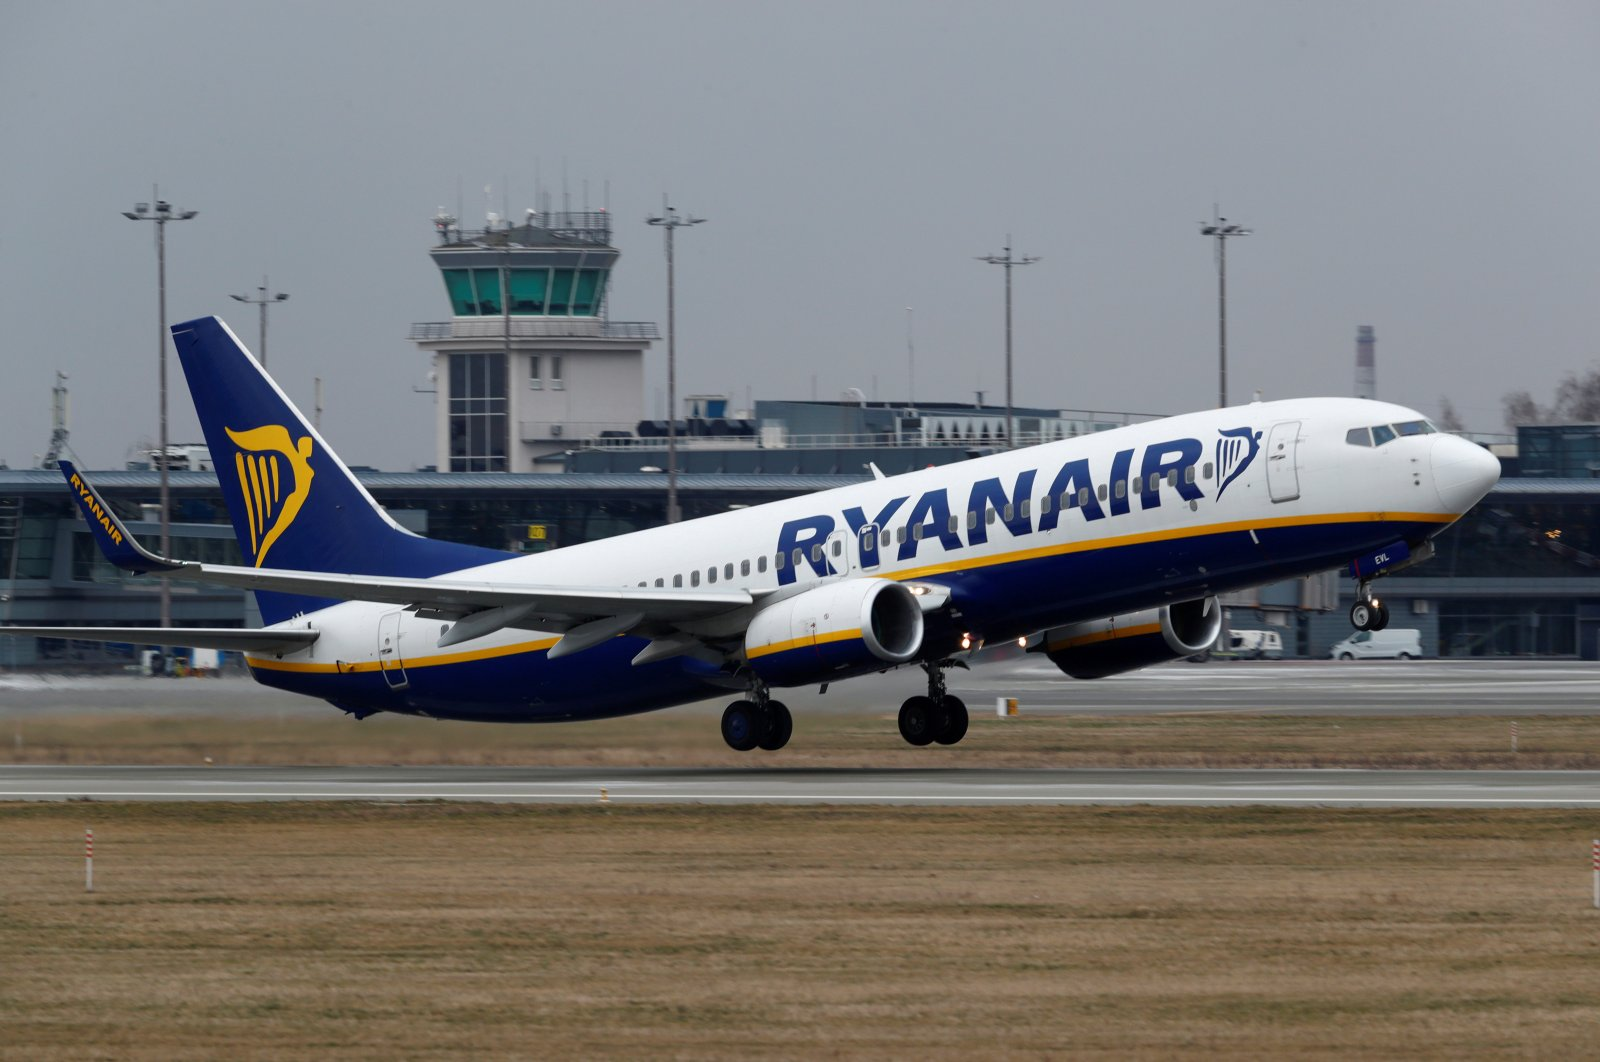 A Ryanair Boeing 737-8AS takes off before all international flights were canceled to help to contain the spread of the coronavirus, Riga, Latvia, March 16, 2020. (Reuters Photo)